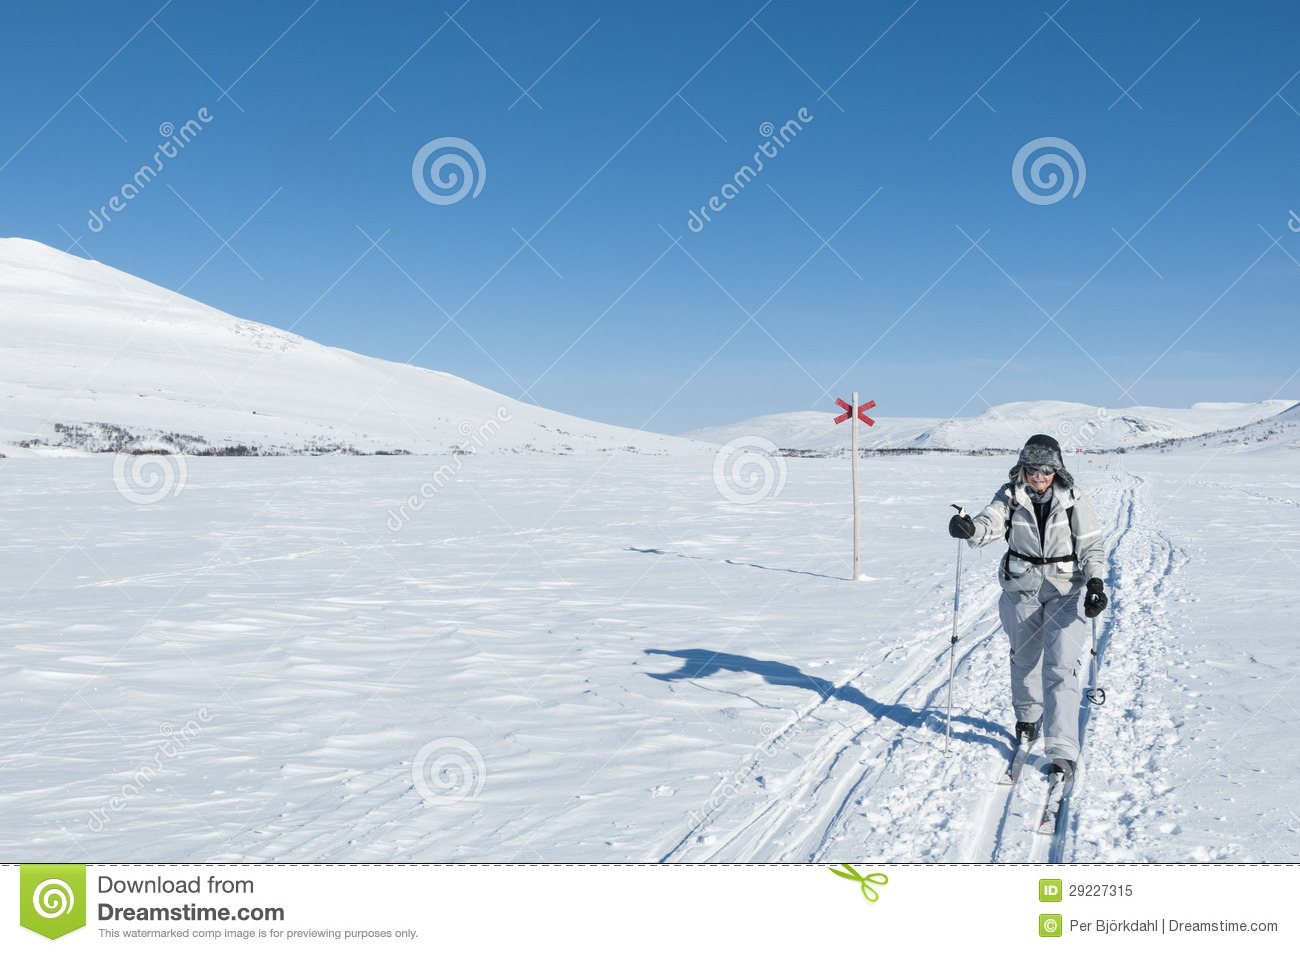 Download Female Tour Skier In Backcountry Ski Track Stock Image - Image of tracks, country: 29227315